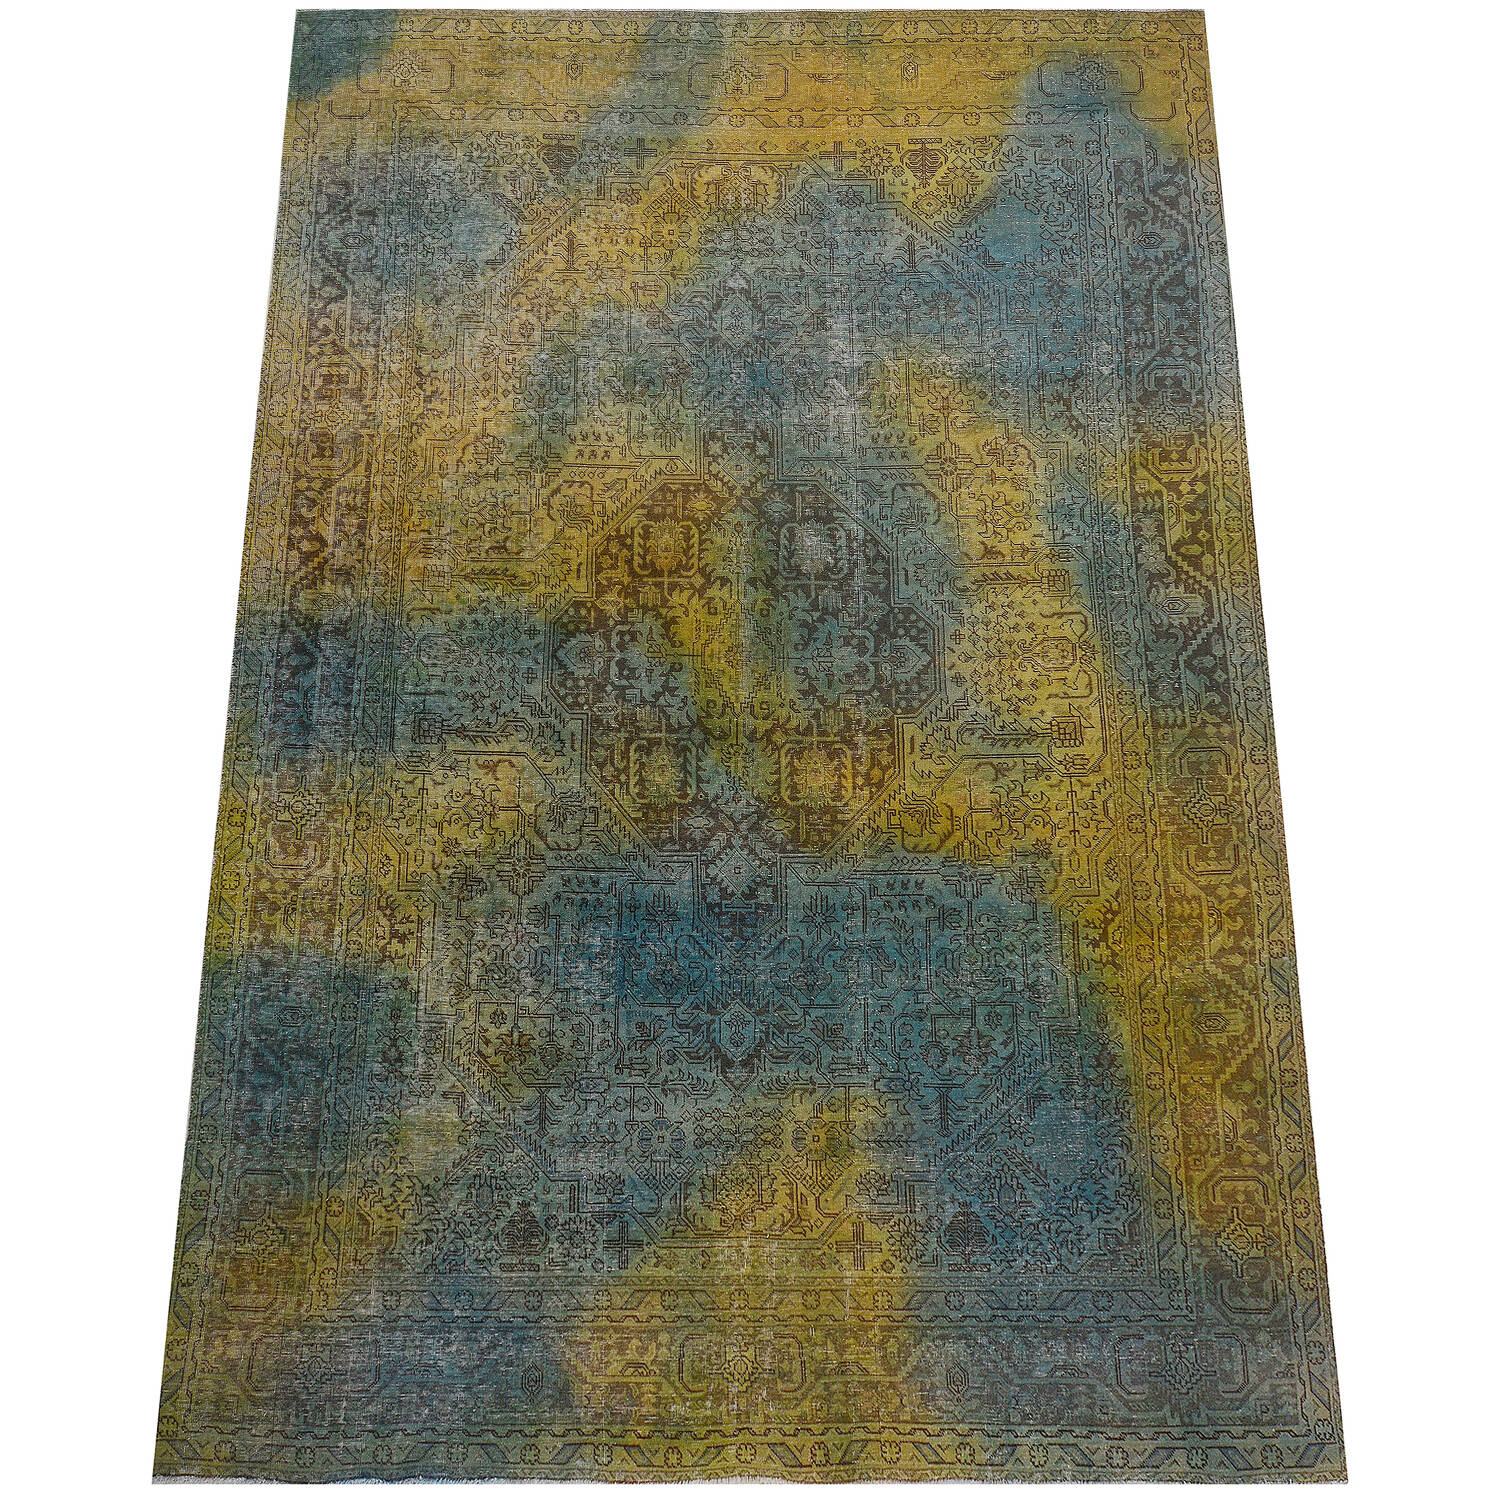 Antique Over Dyed Geometric Tabriz Persian Area Rug 10x13 image 2